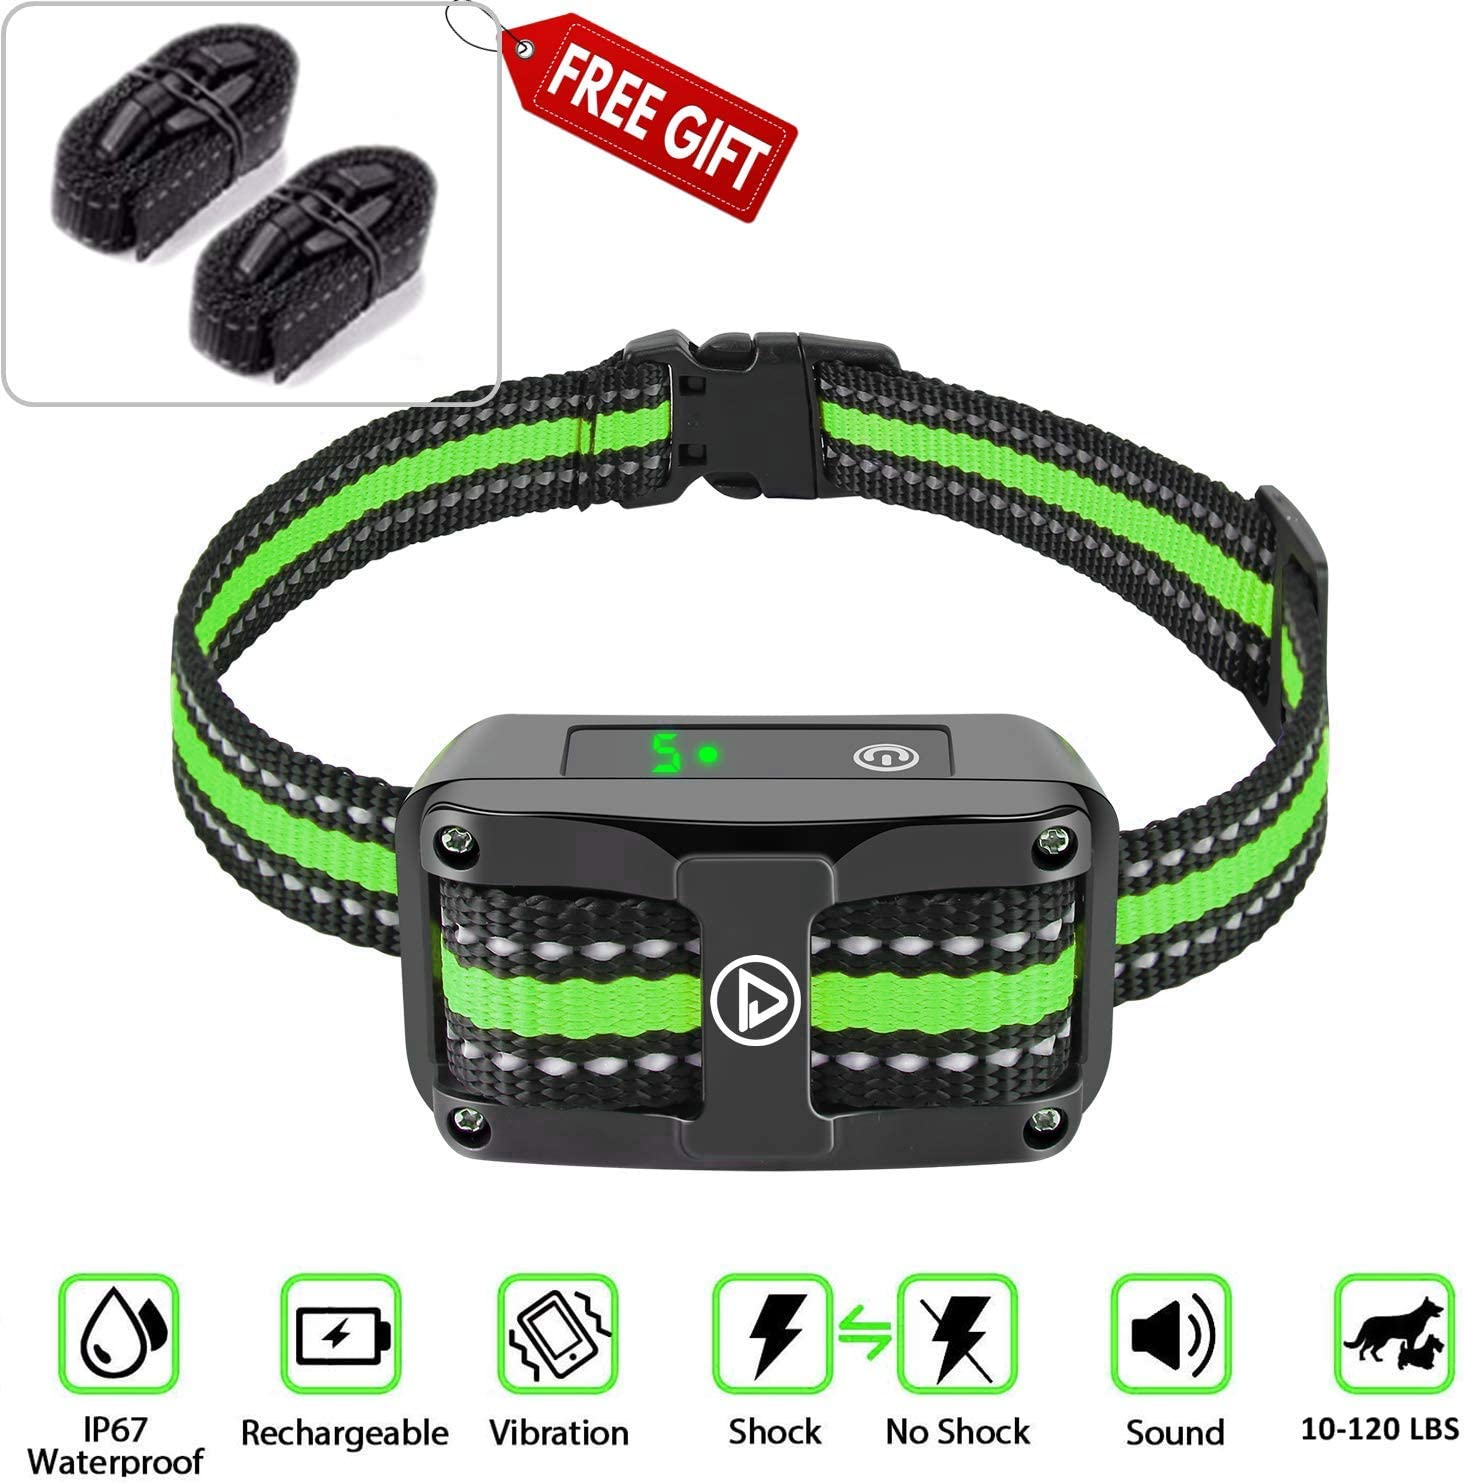 TrendHolders Automatic Bark Collar – Shock Collar for Dogs Rechargeable Best Barking Collar with Vibration Anti Barking Device for Small Medium Large Dogs